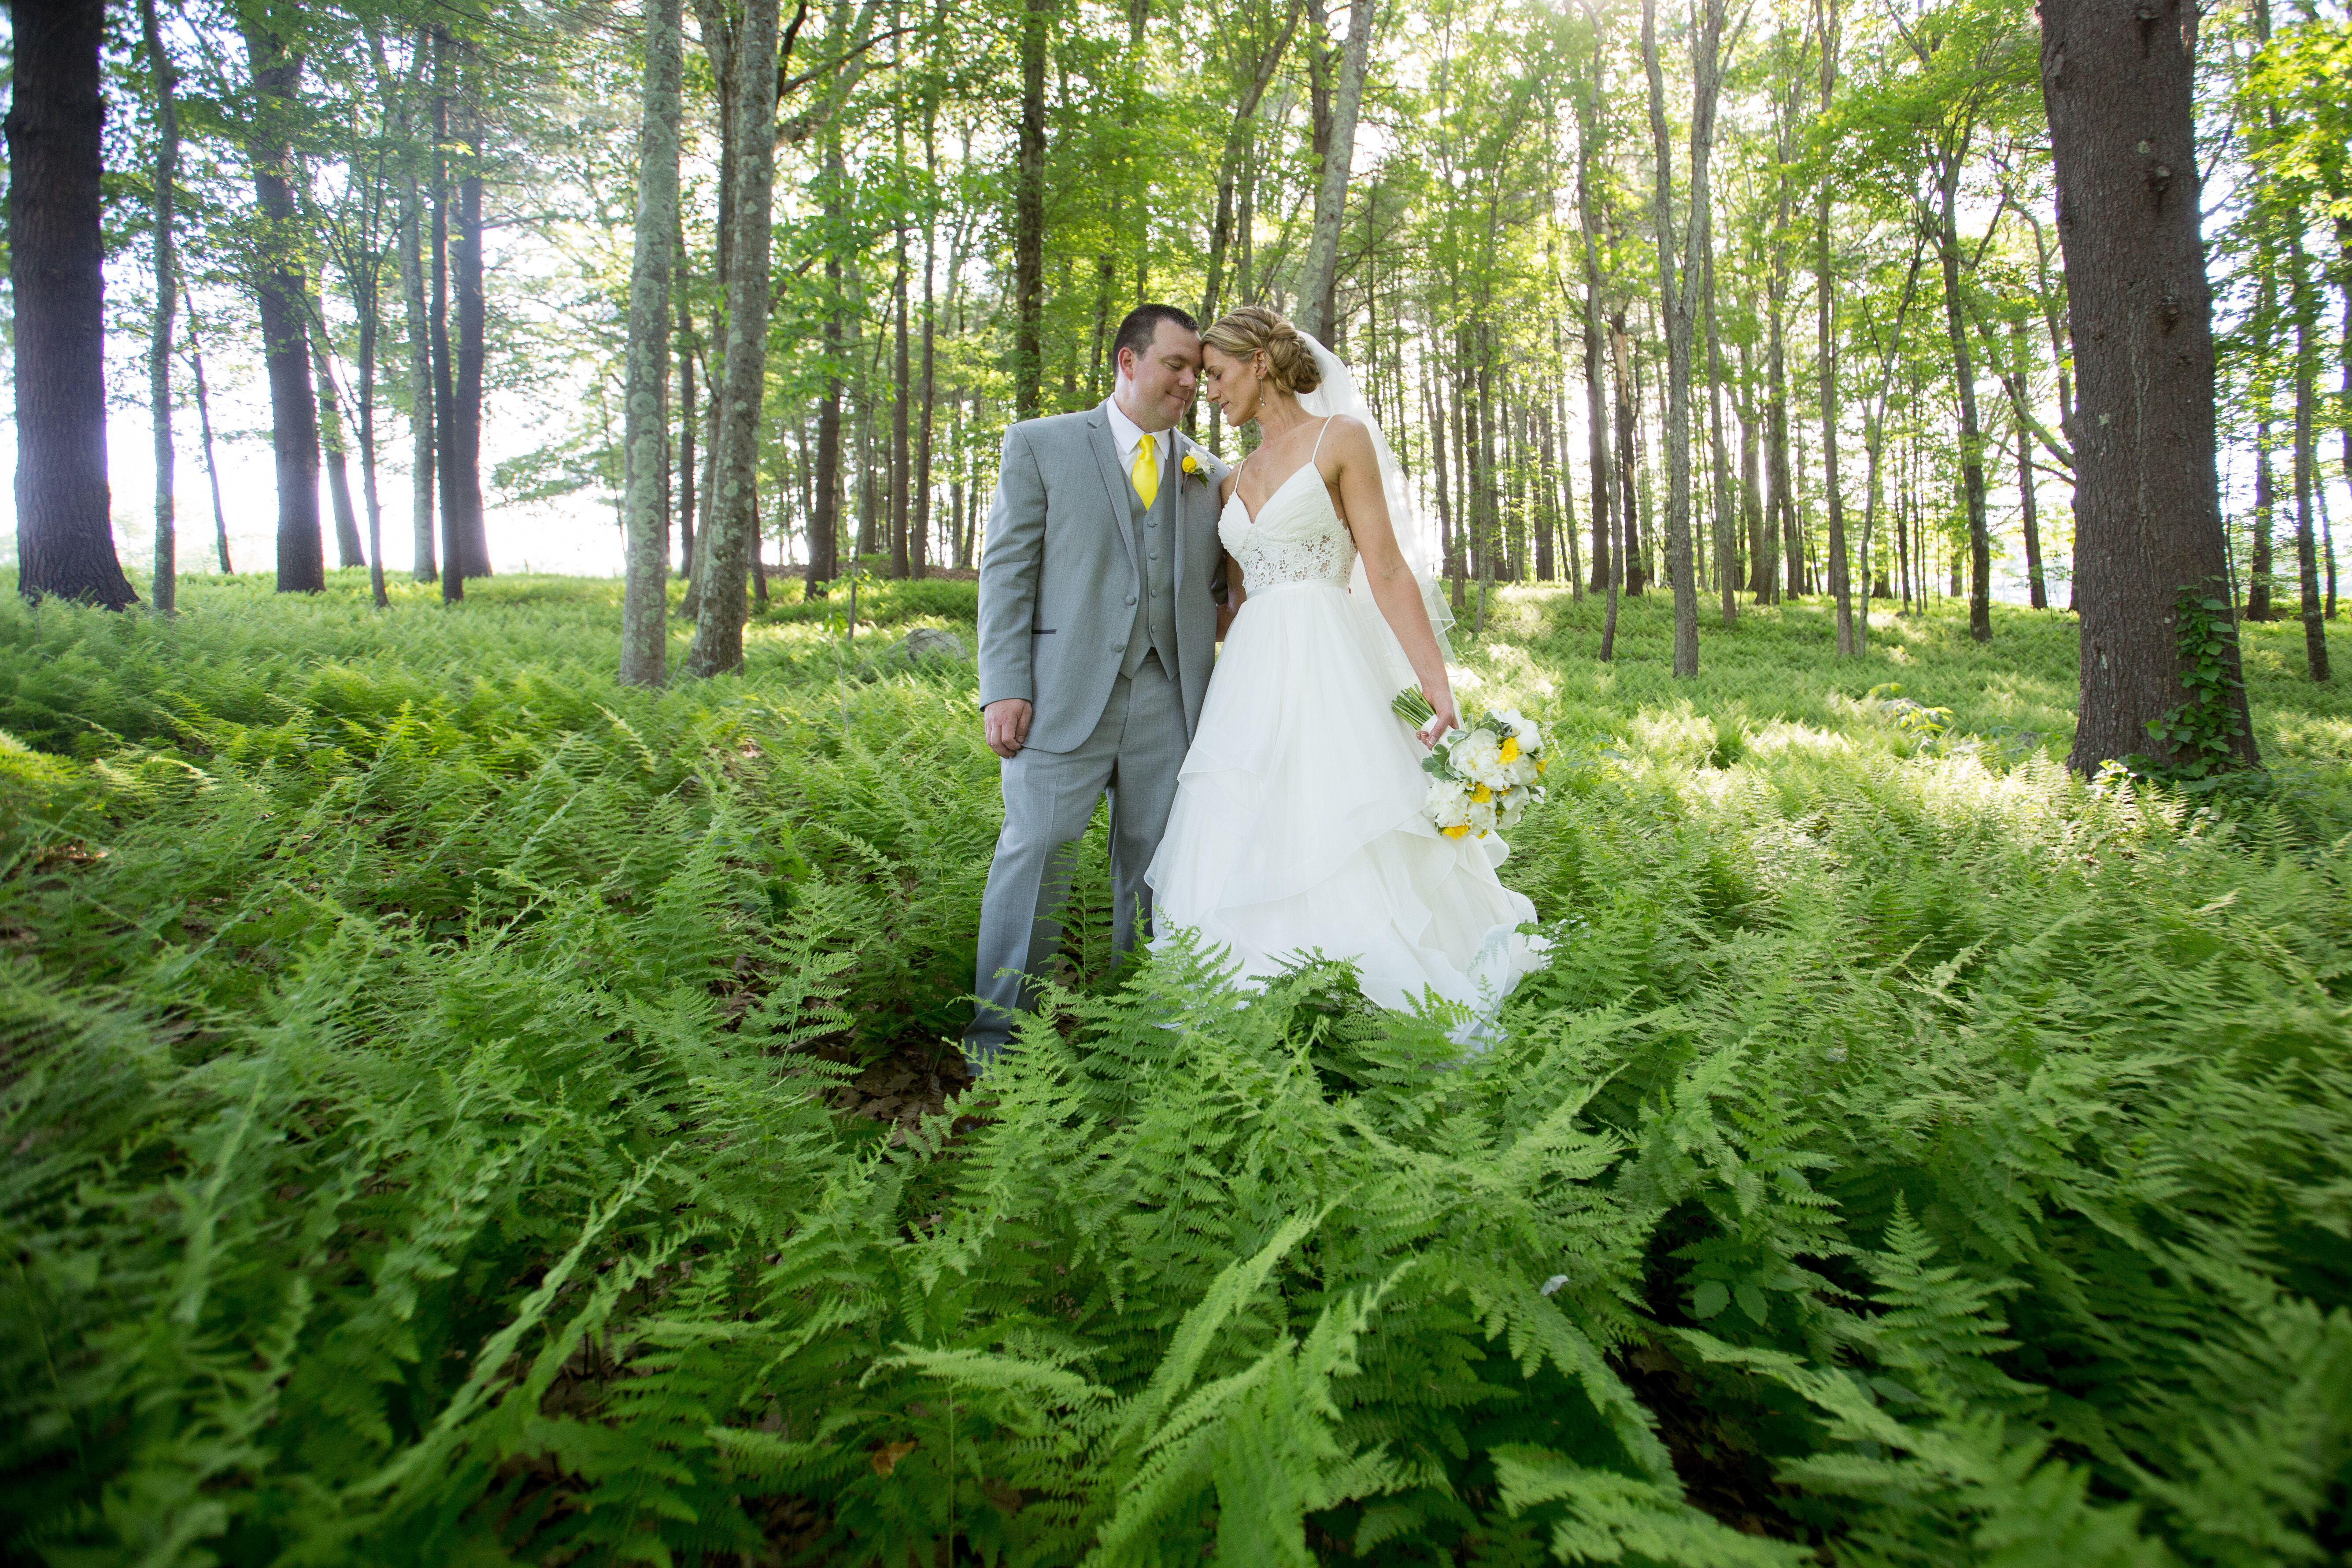 Wedding Reception Venues In Leicester MA